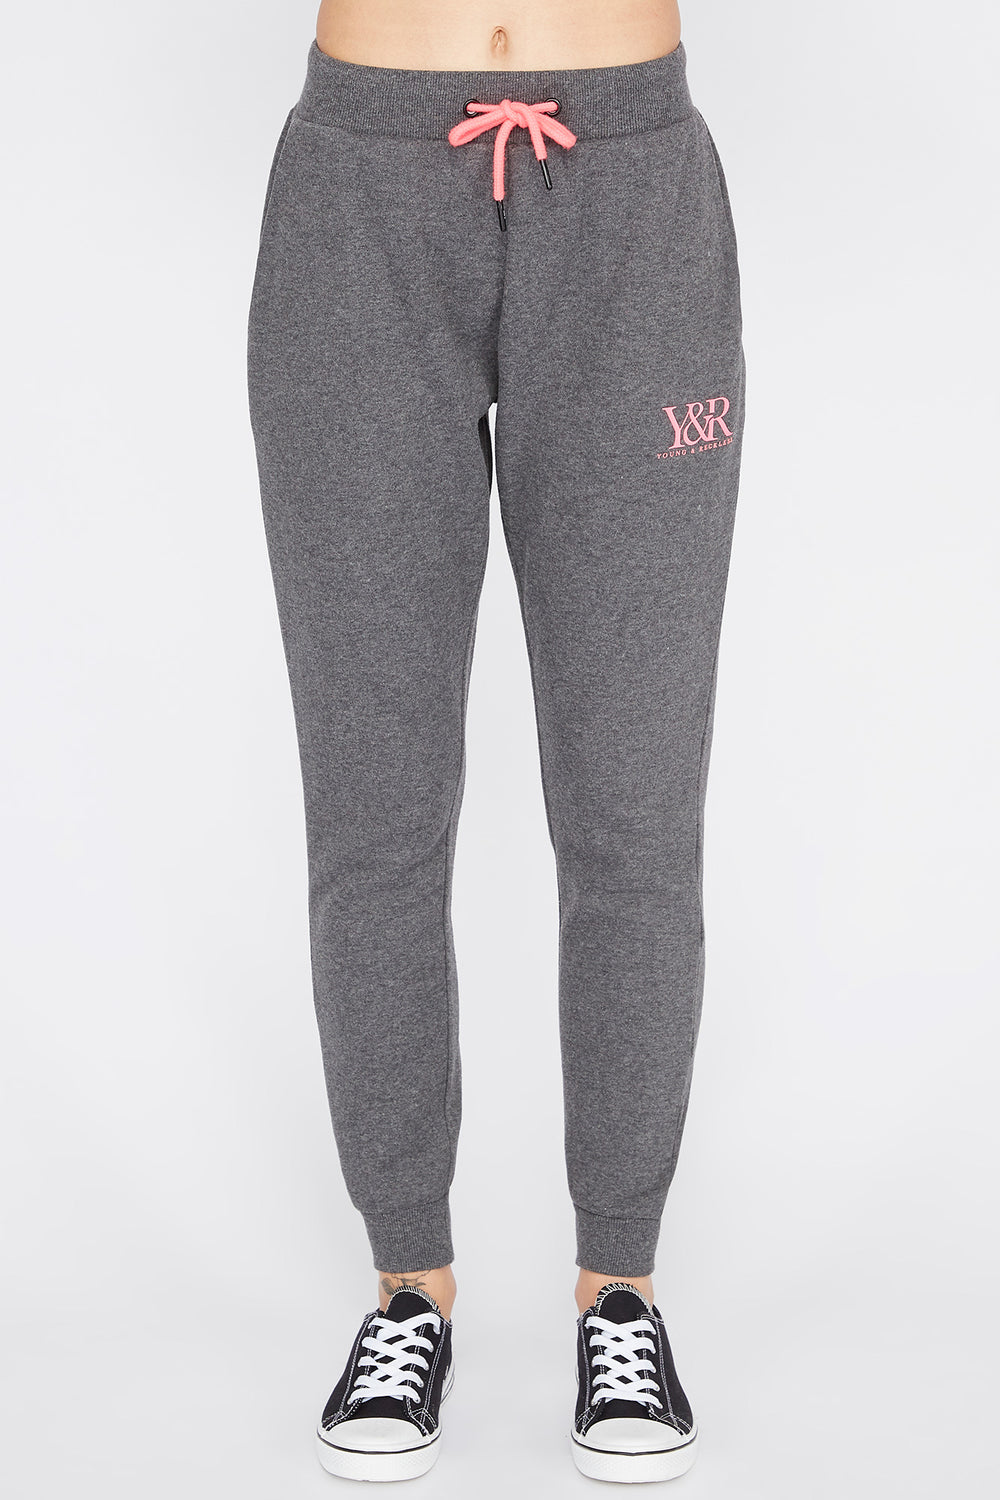 Young & Reckless Womens Solid Jogger Charcoal